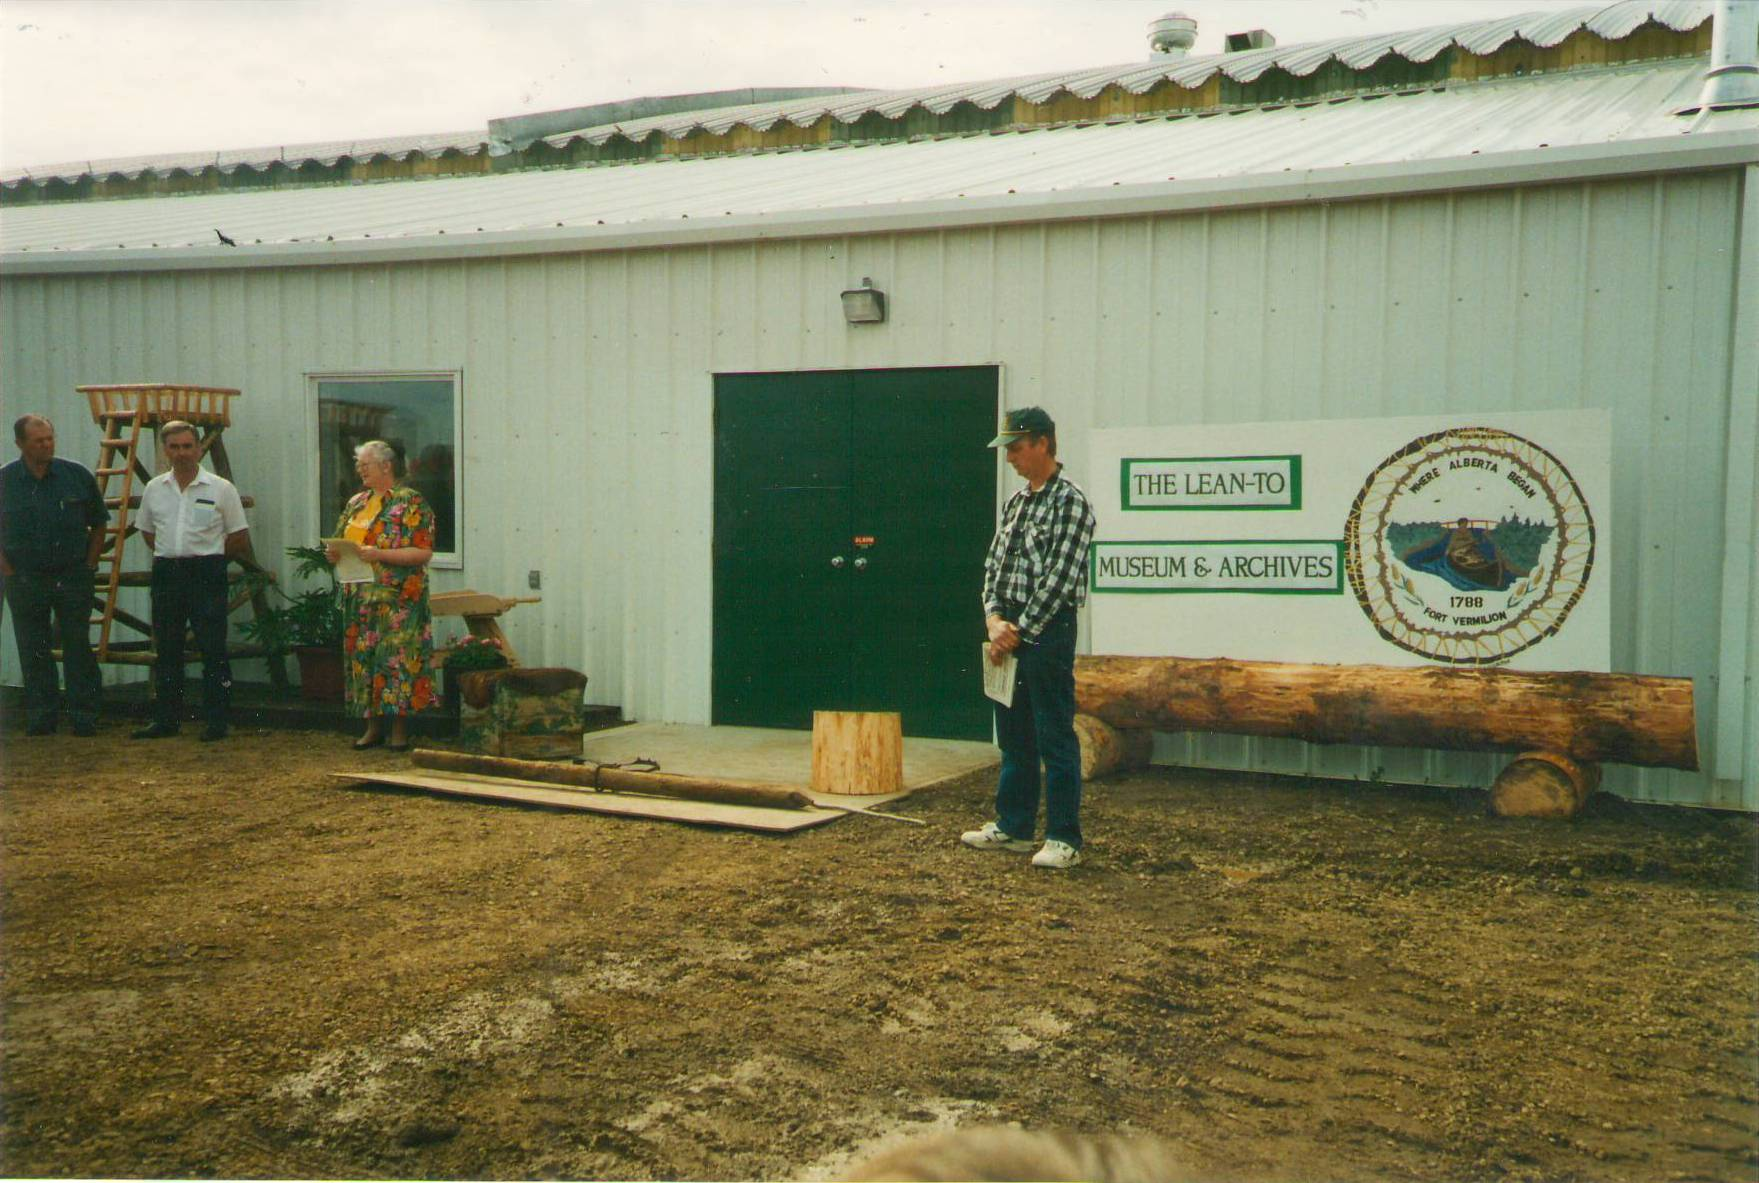 Opening of the Fort Vermilion Lean-to Museum and Archives 1995. Photo Credit: Pat Threlfall.